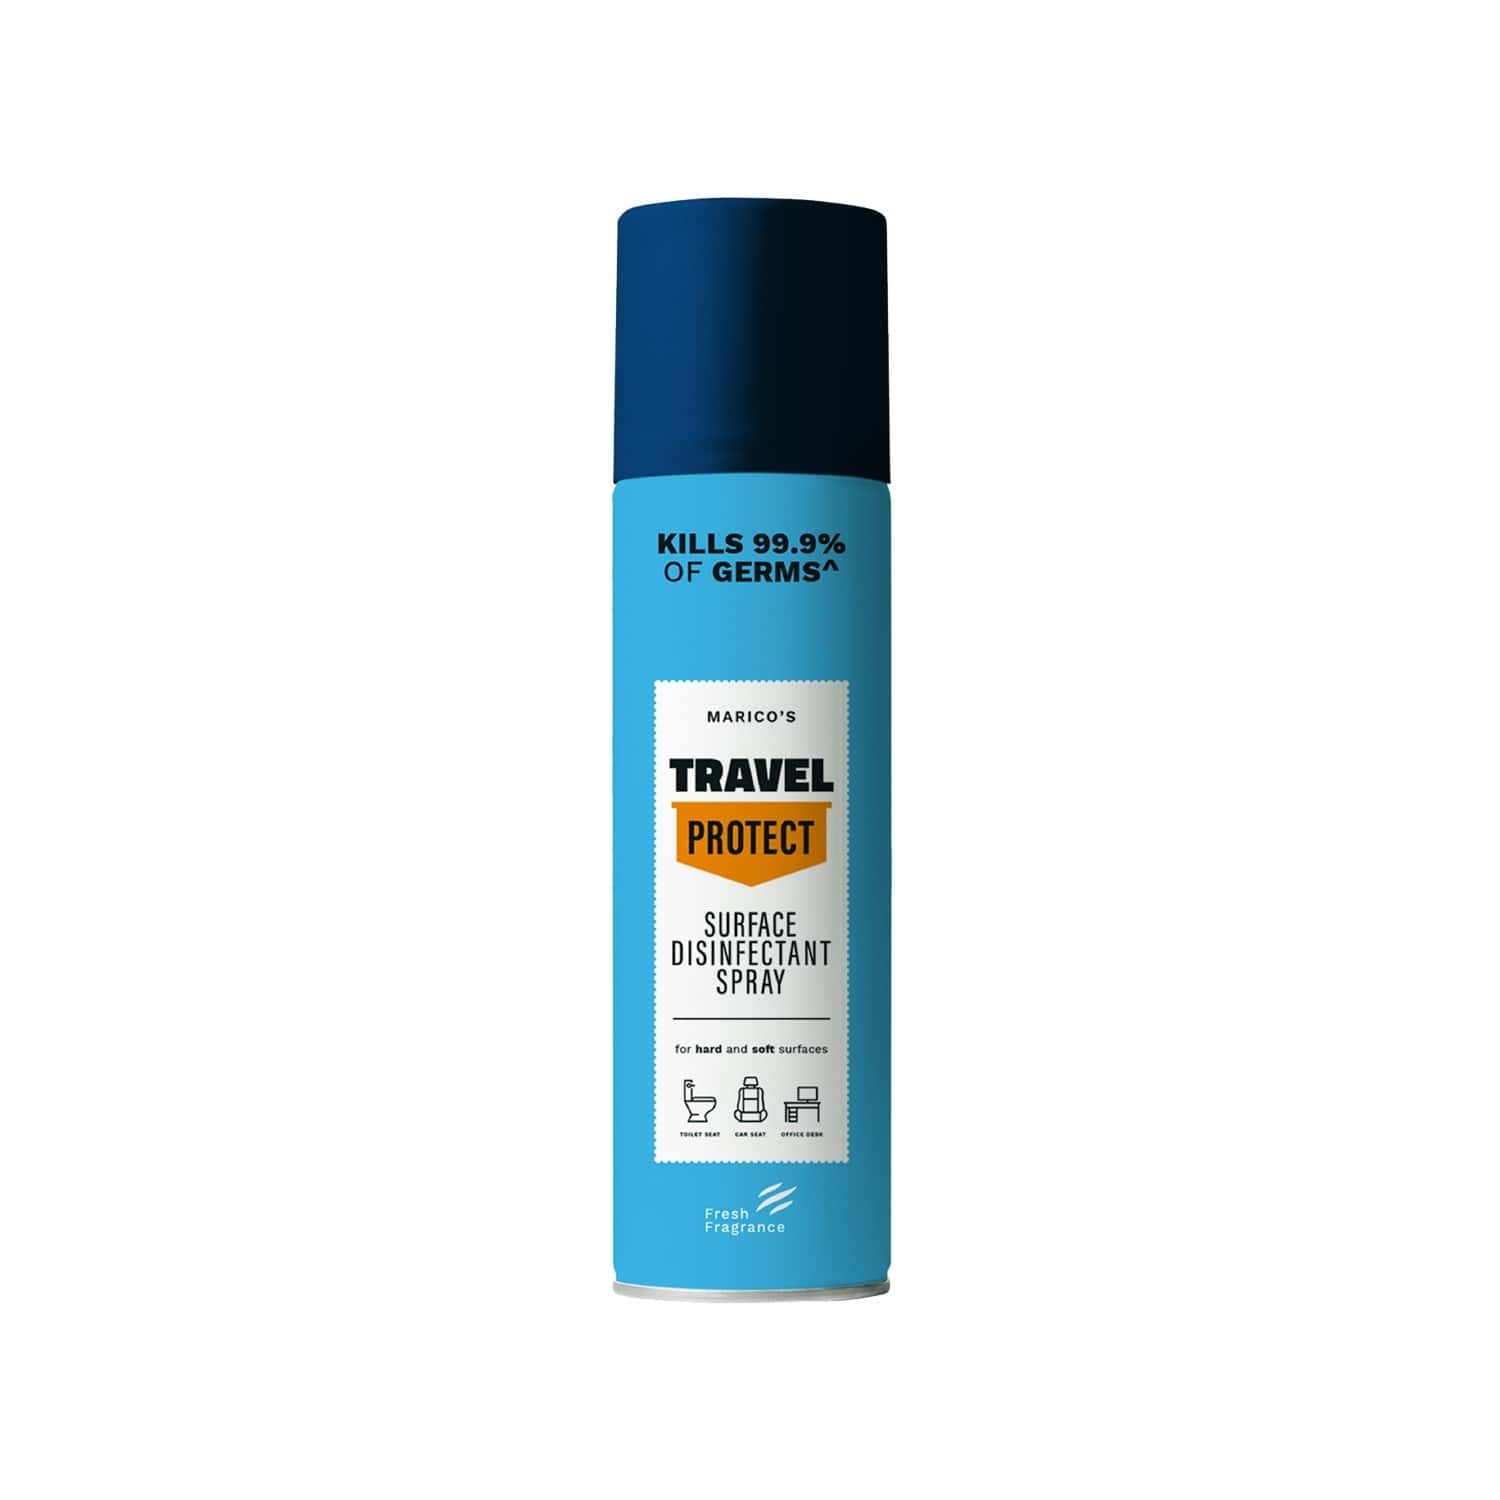 Marico's Travel Protect Surface Disinfectant Spray, 75 Ml